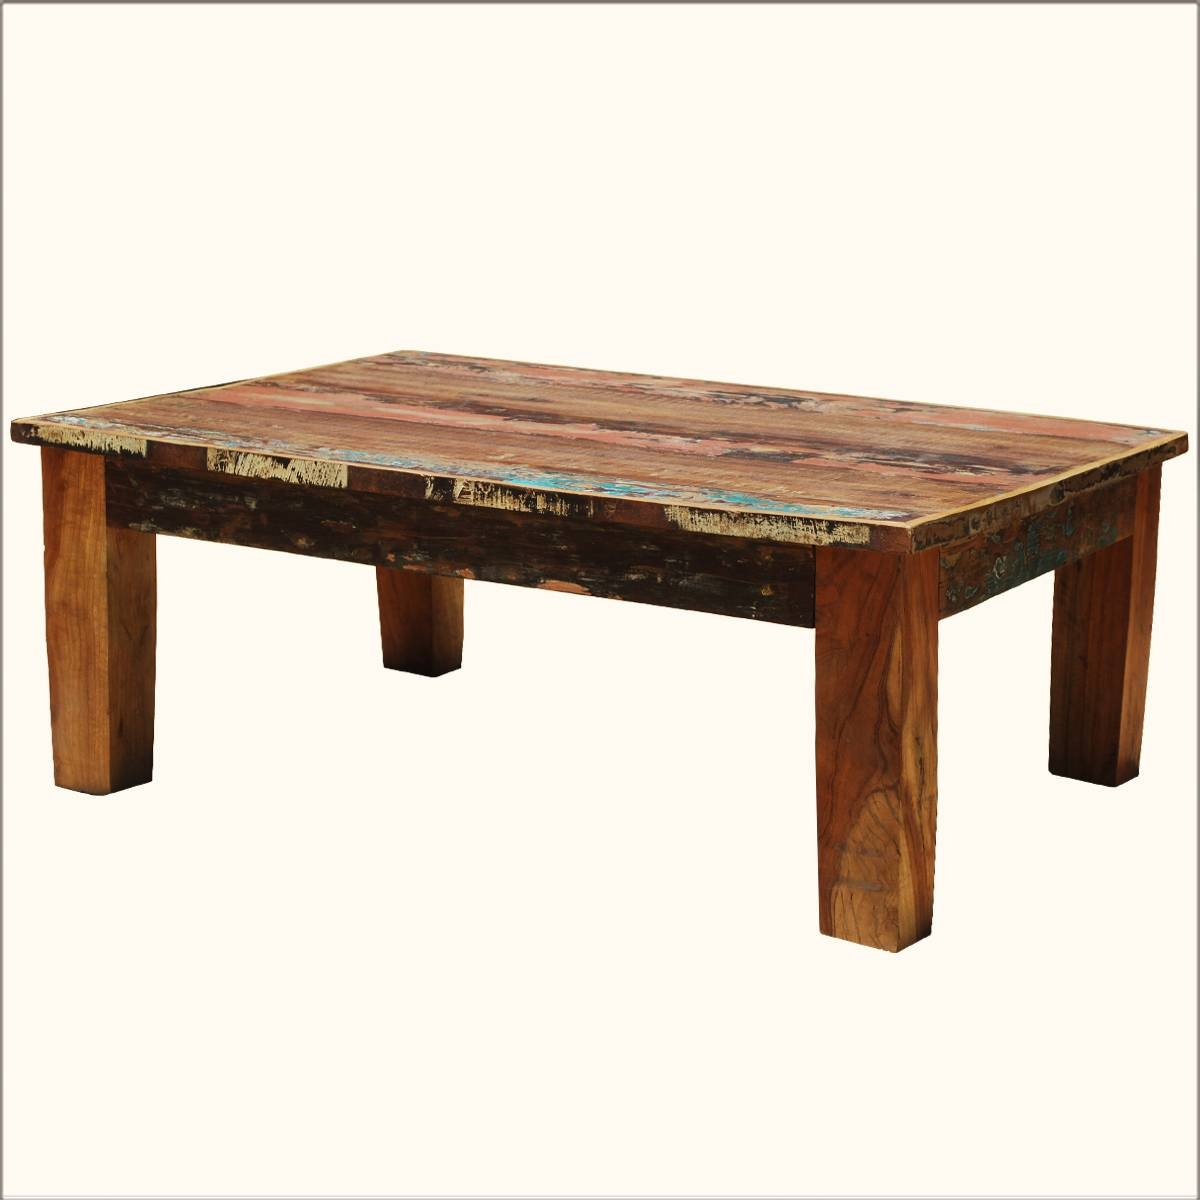 Coffee Table: Appealing Rustic Wood Coffee Tables Ideas Rustic with regard to Rustic Wooden Coffee Tables (Image 4 of 15)